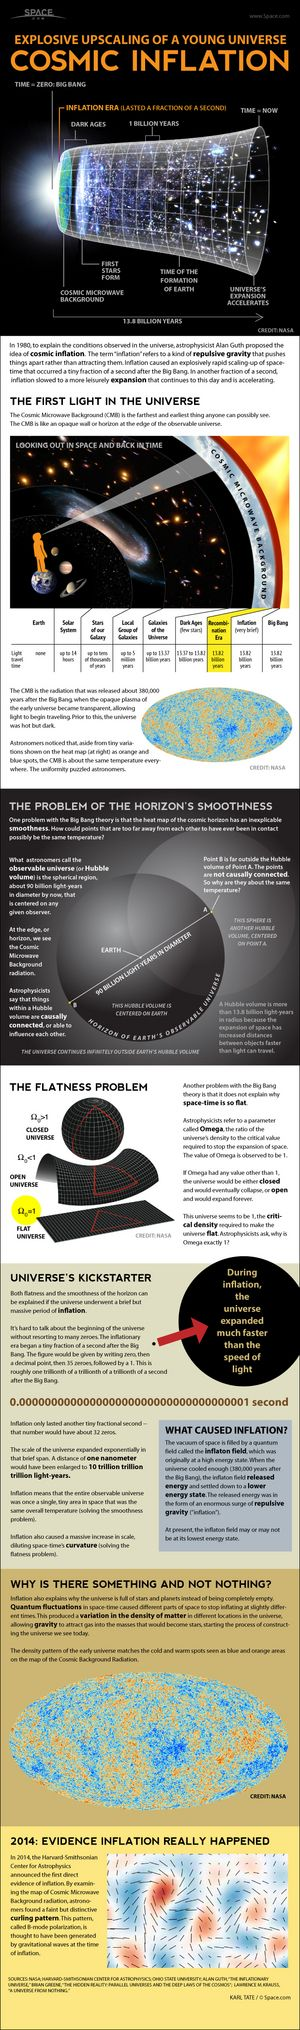 How Cosmic Inflation Gave the Universe the Ultimate Kickstarter (Infographic)